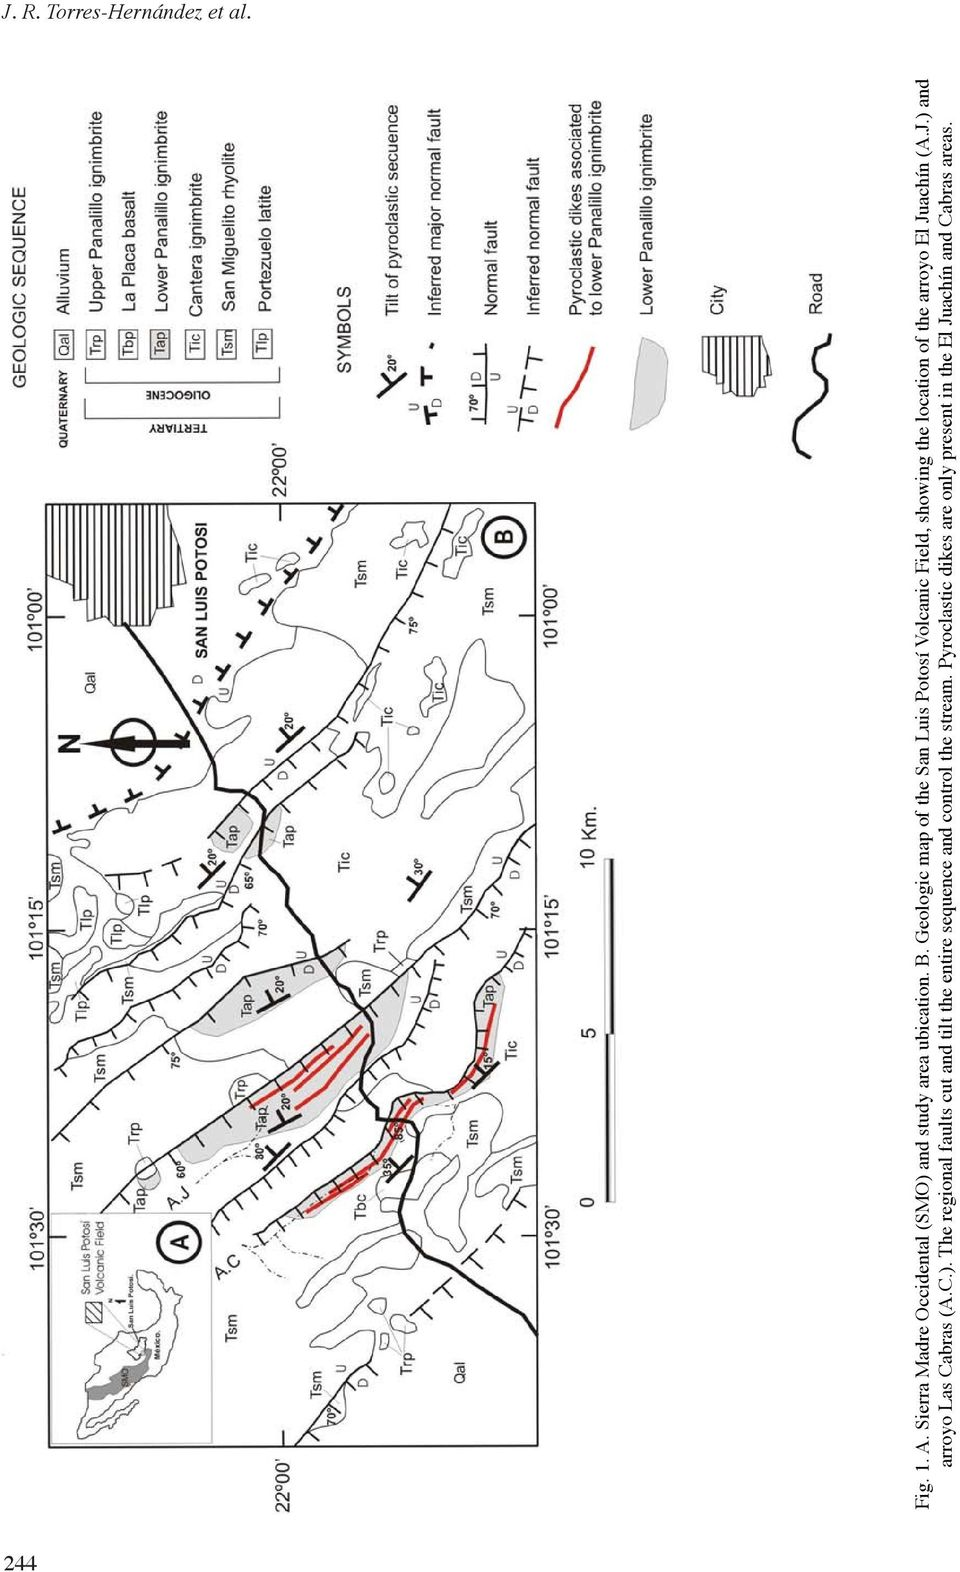 Juachín (A.J.) and arroyo Las Cabras (A.C.). The regional faults cut and tilt the entire sequence and control the stream.